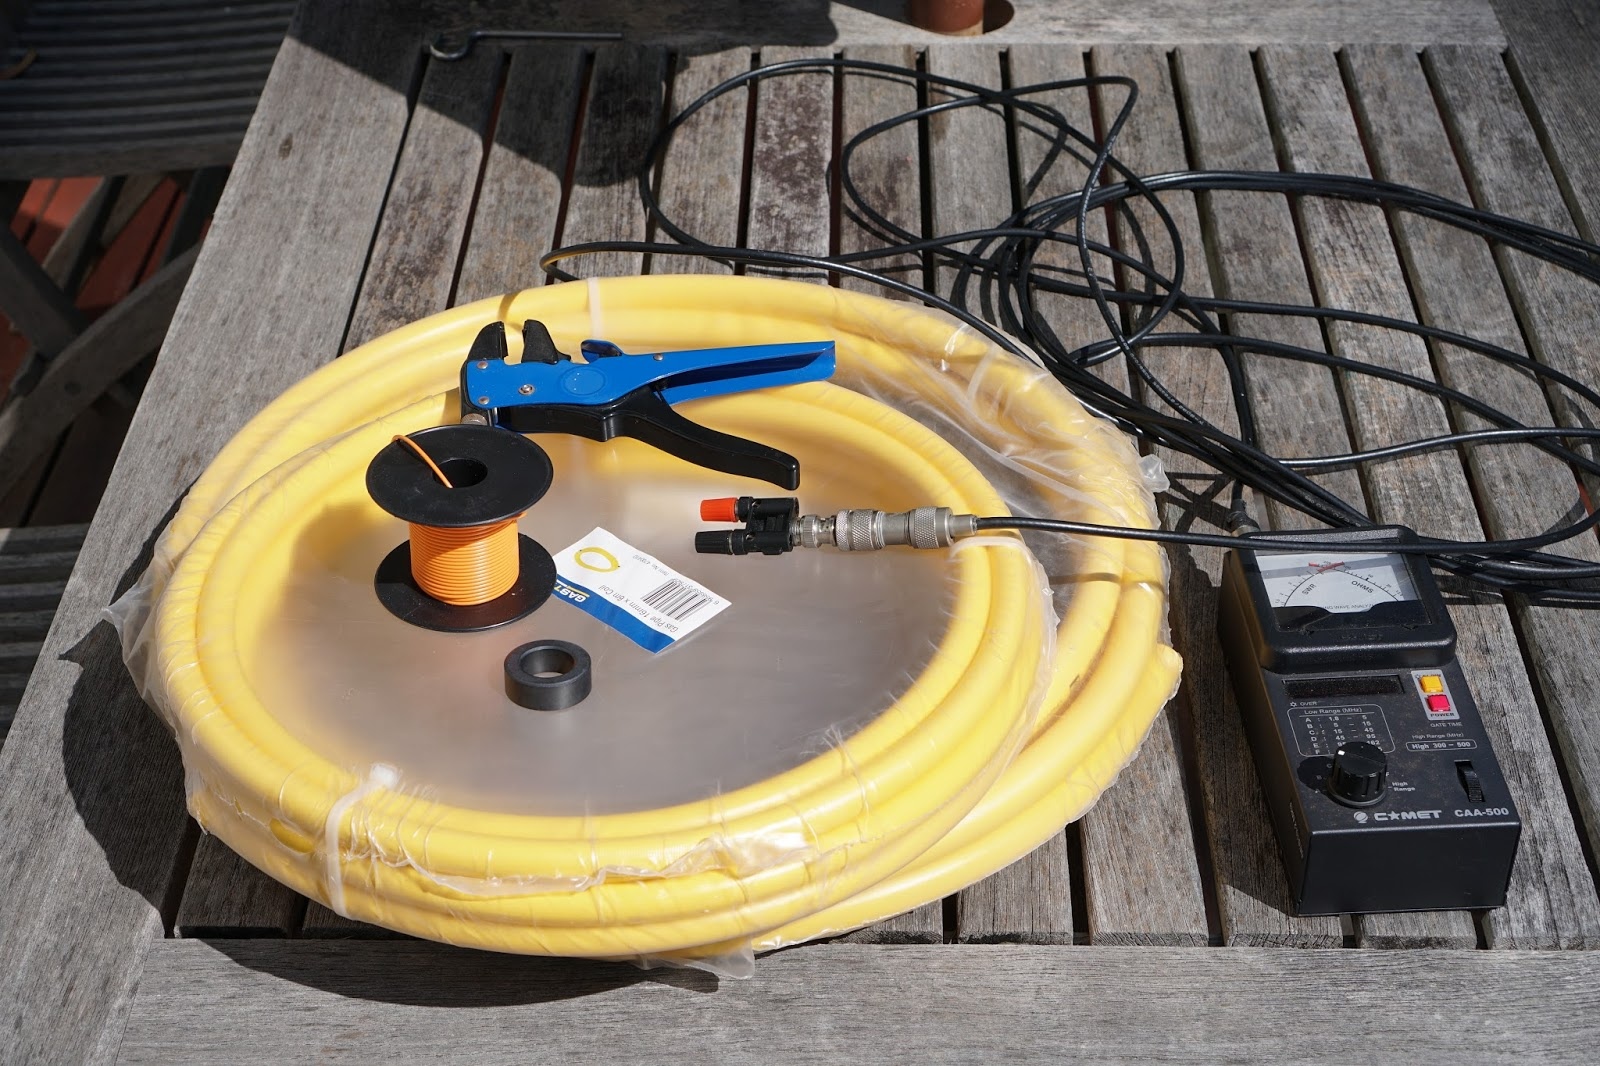 marxy's musing on technology: Simple pexal magnetic loop